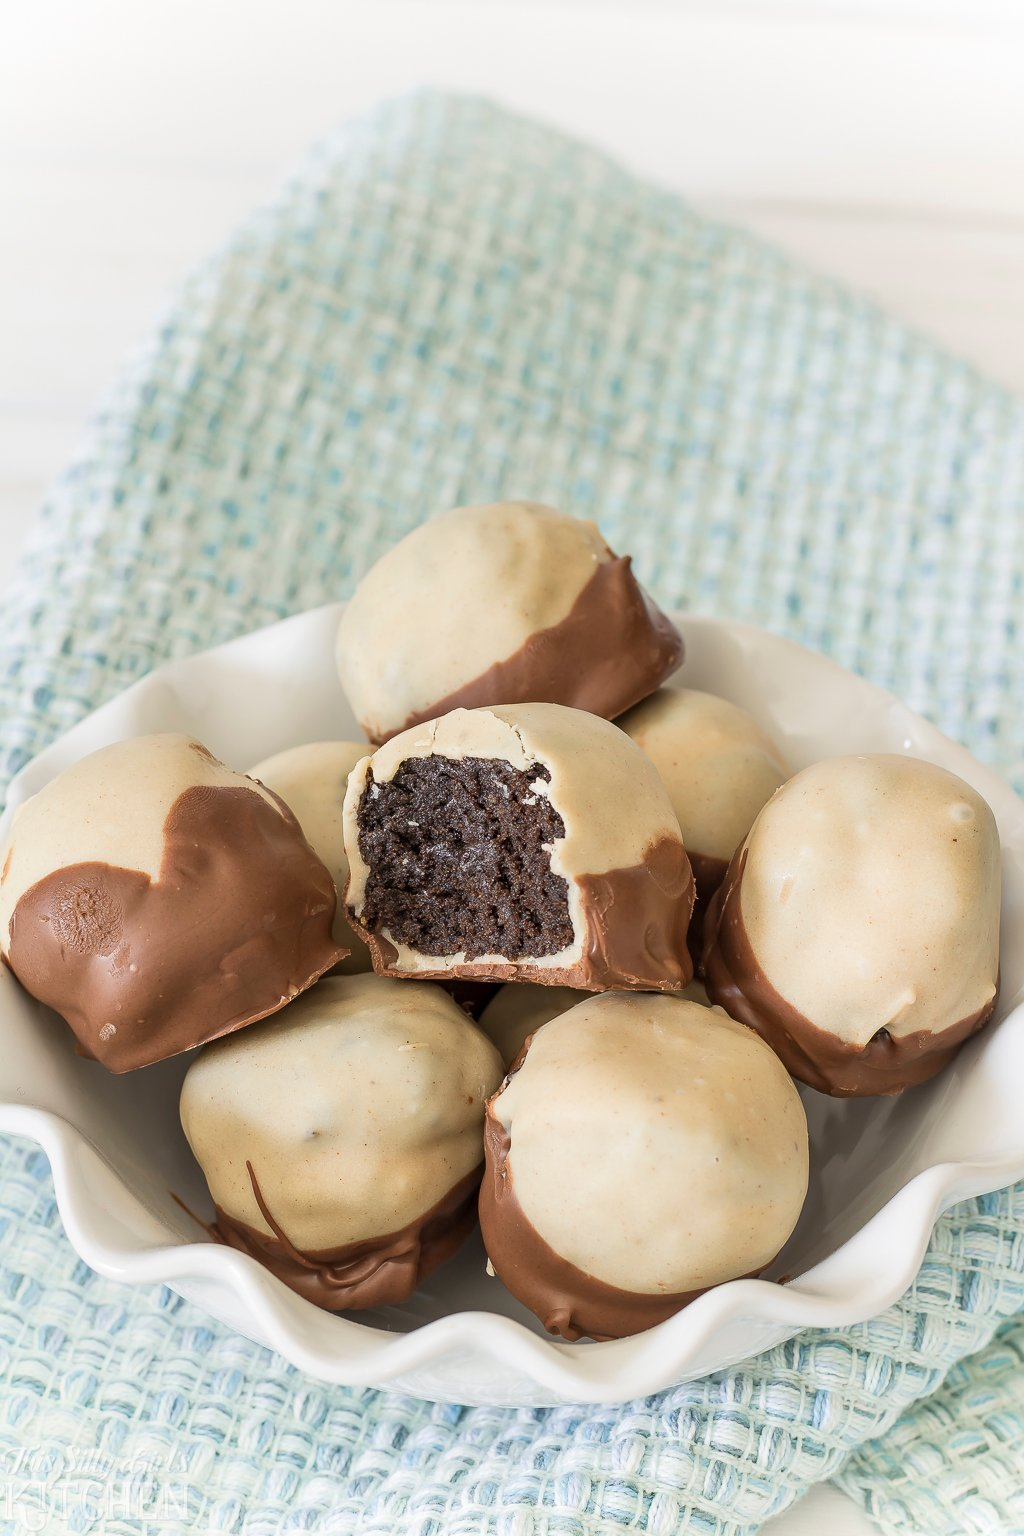 Peanut Butter Oreo Buckeyes, peanut butter Oreo truffles dipped in peanut butter coating and milk chocolate! #recipe from thissillygirlskitchen.com #buckeyes #buckeyesrecipe #buckeyerecipe #whatisabuckeye #candy #oreo #oreotruffle #peanutbutter #peanutbutterbuckeyes